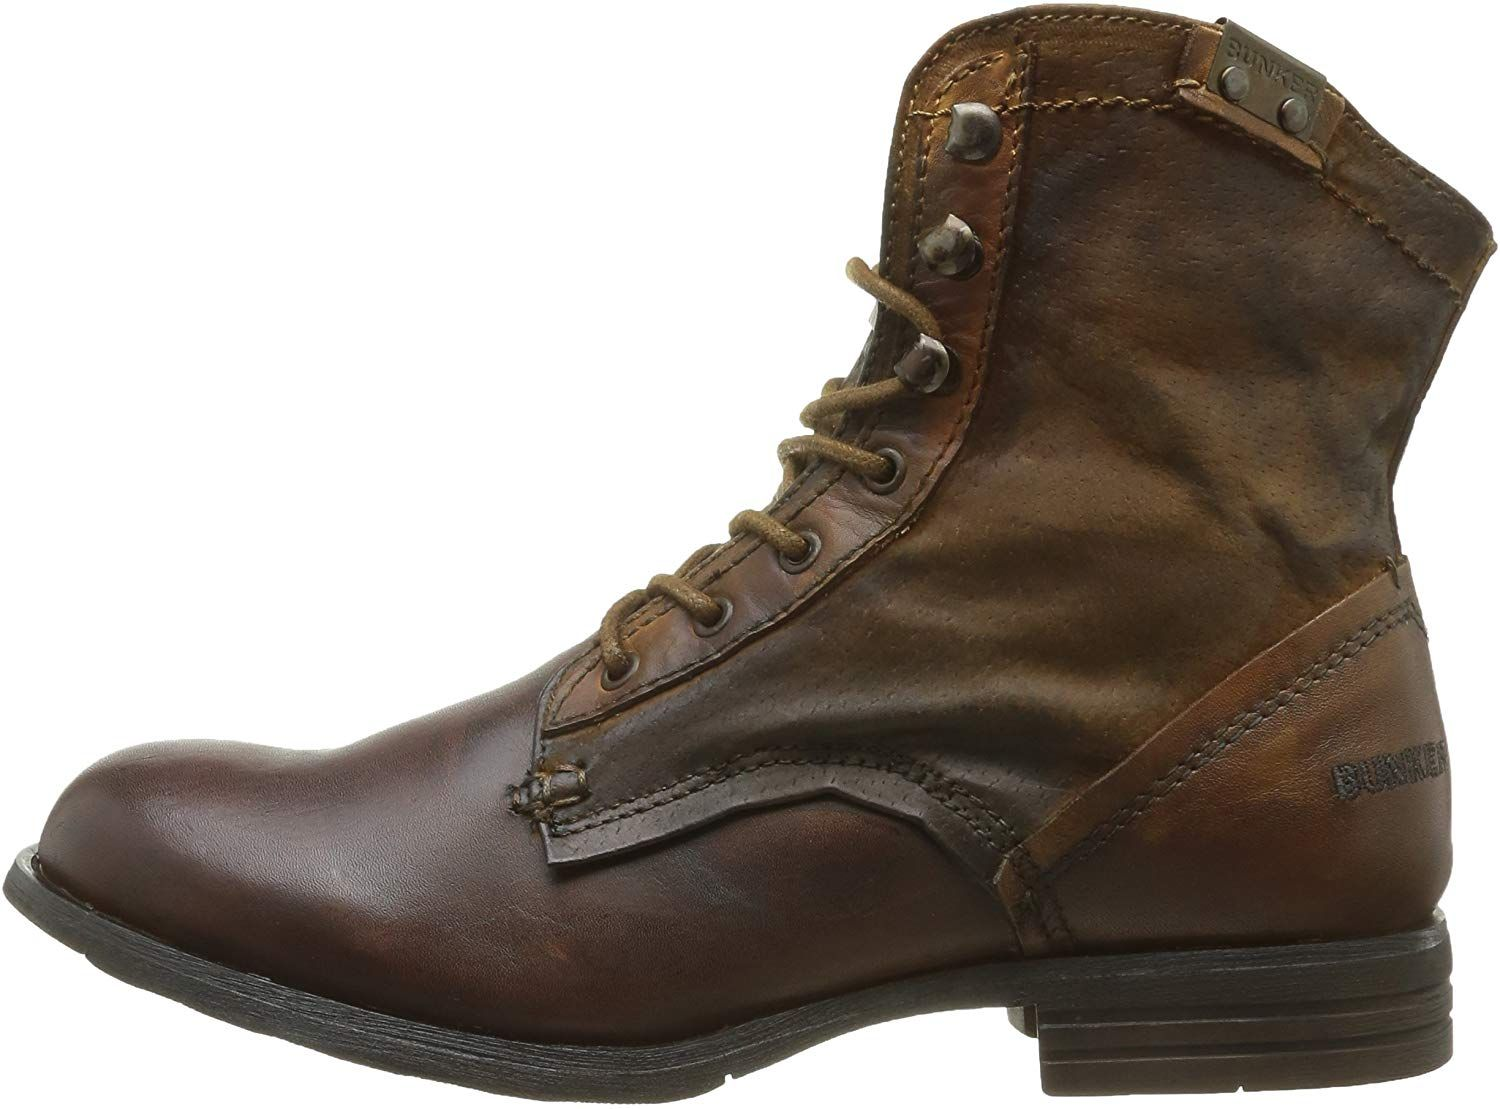 best prices best deals on quality products Bunker Tura, Boots homme - Marron (Tabac), 43 EU: Amazon.fr ...